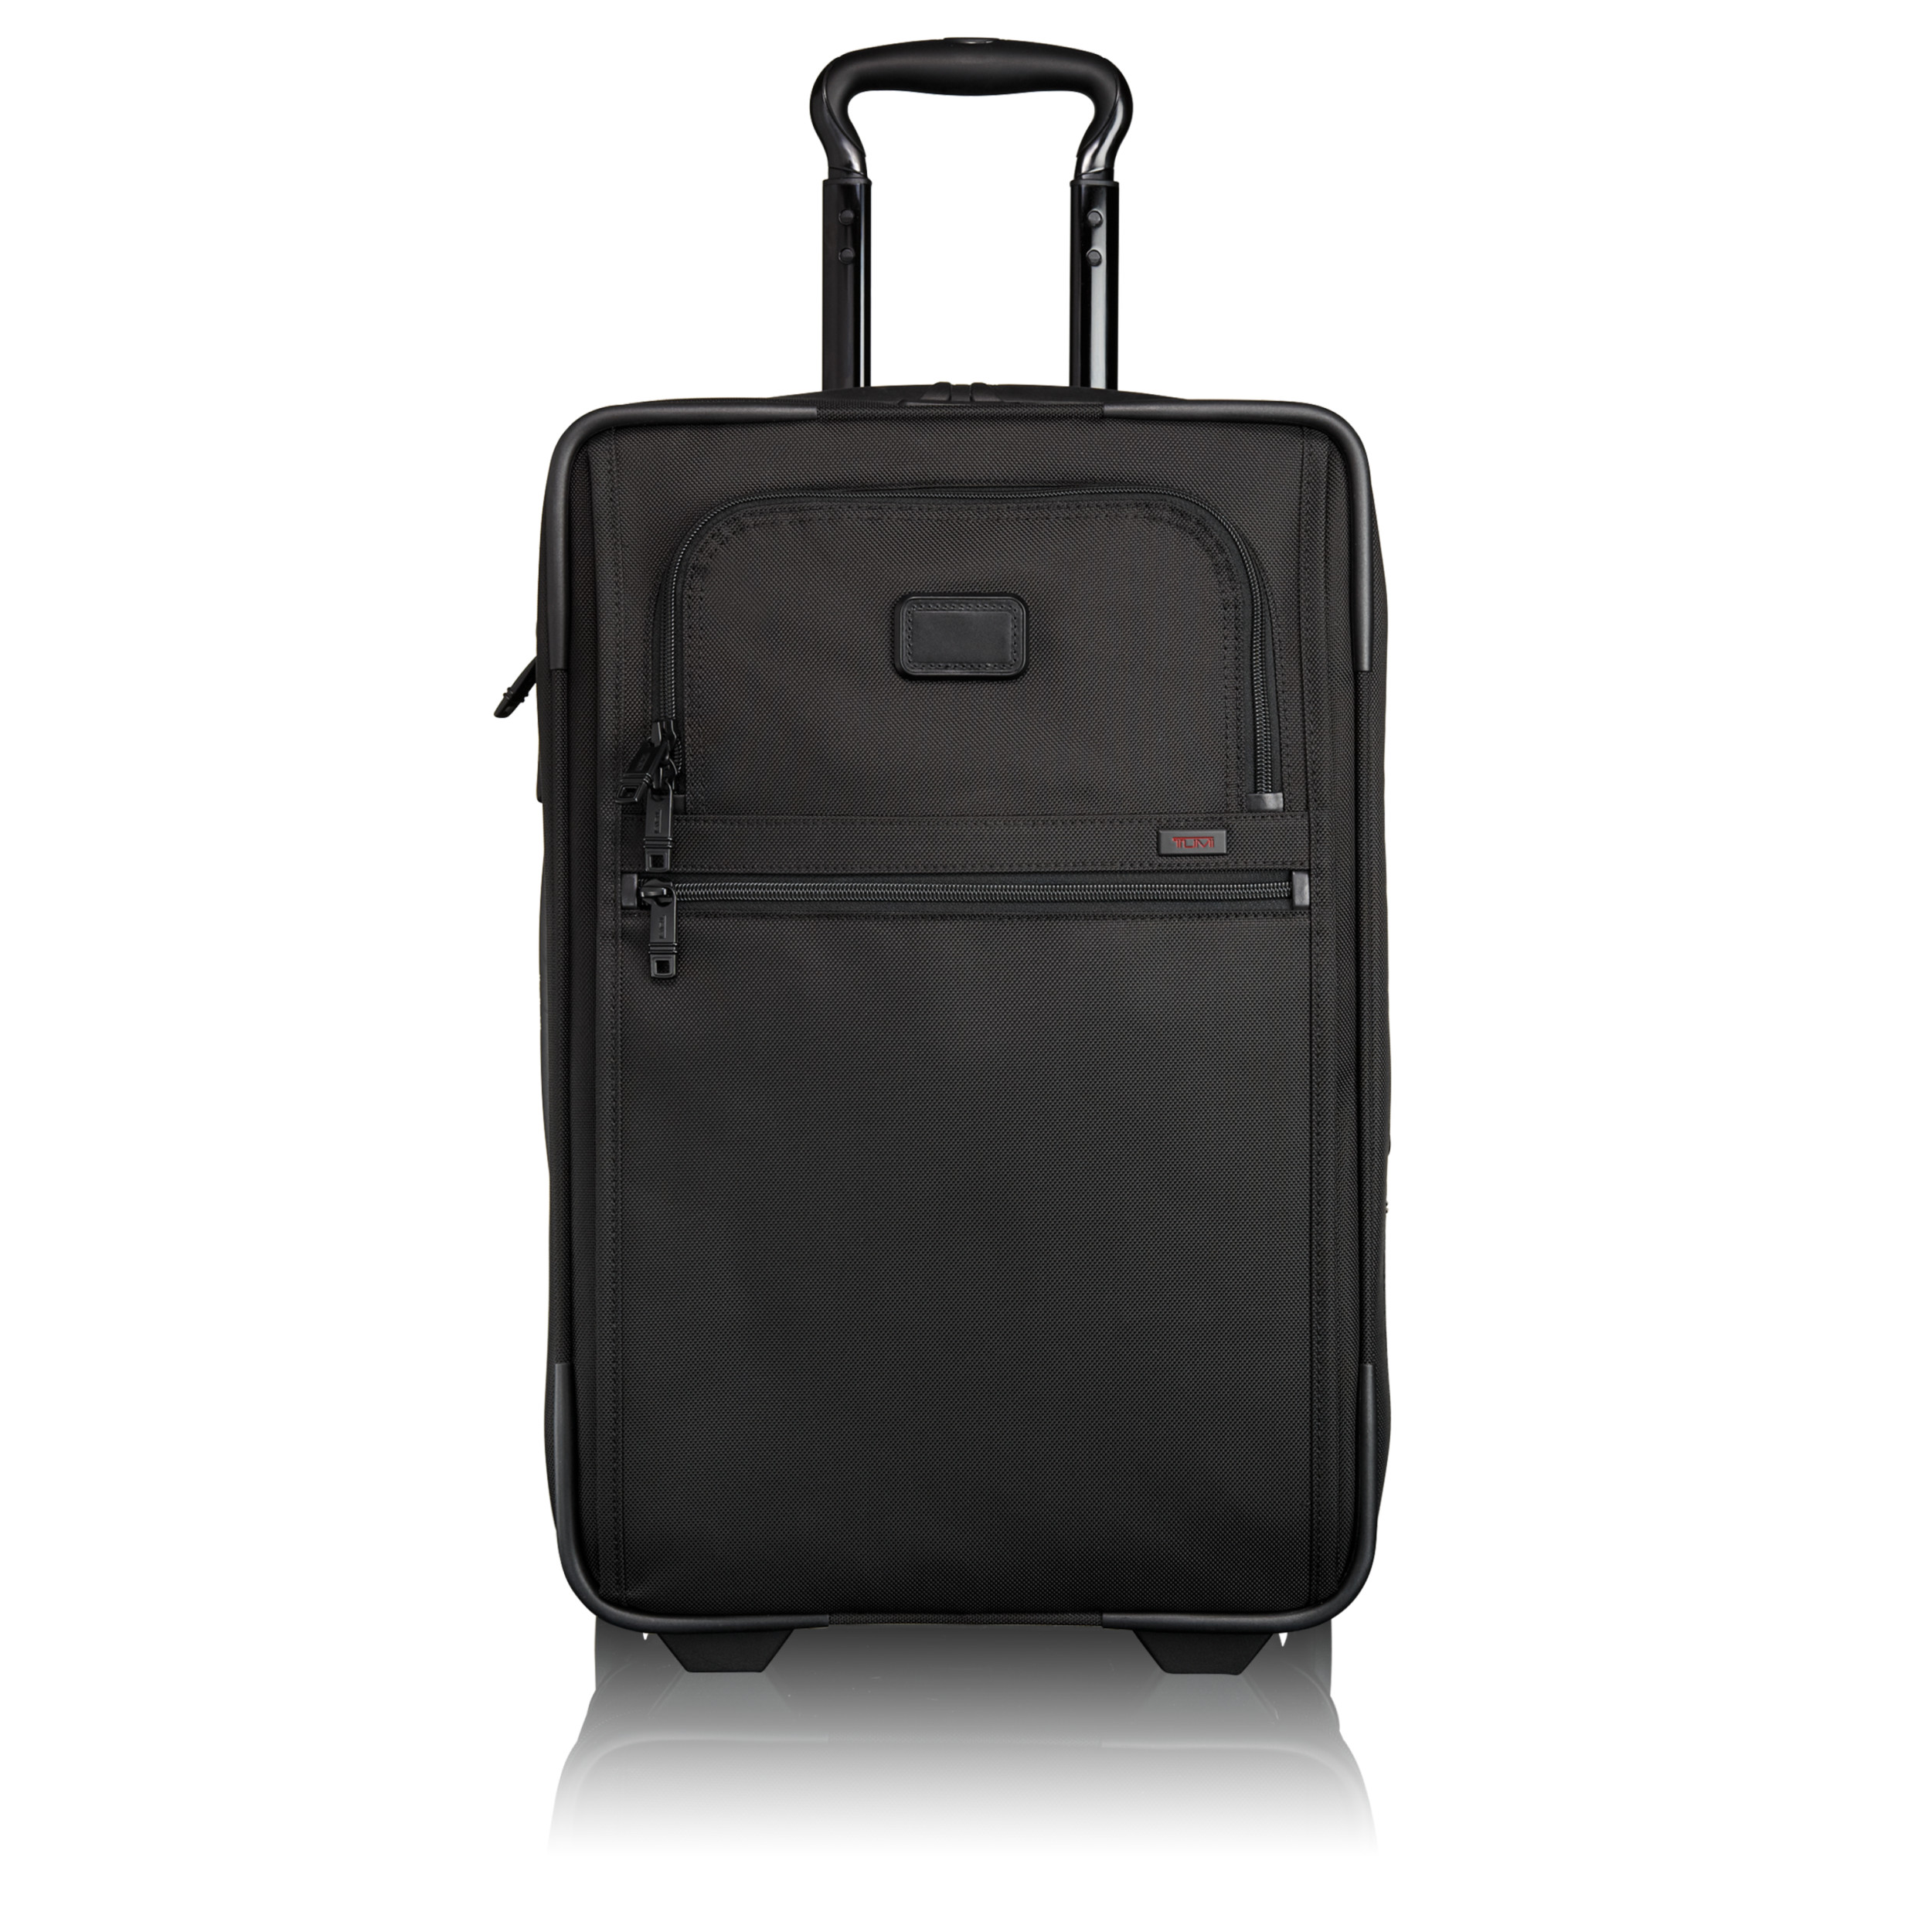 tumi alpha 2 carry on 2 rollenkoffer erweiterbar black jetzt auf kaufen. Black Bedroom Furniture Sets. Home Design Ideas